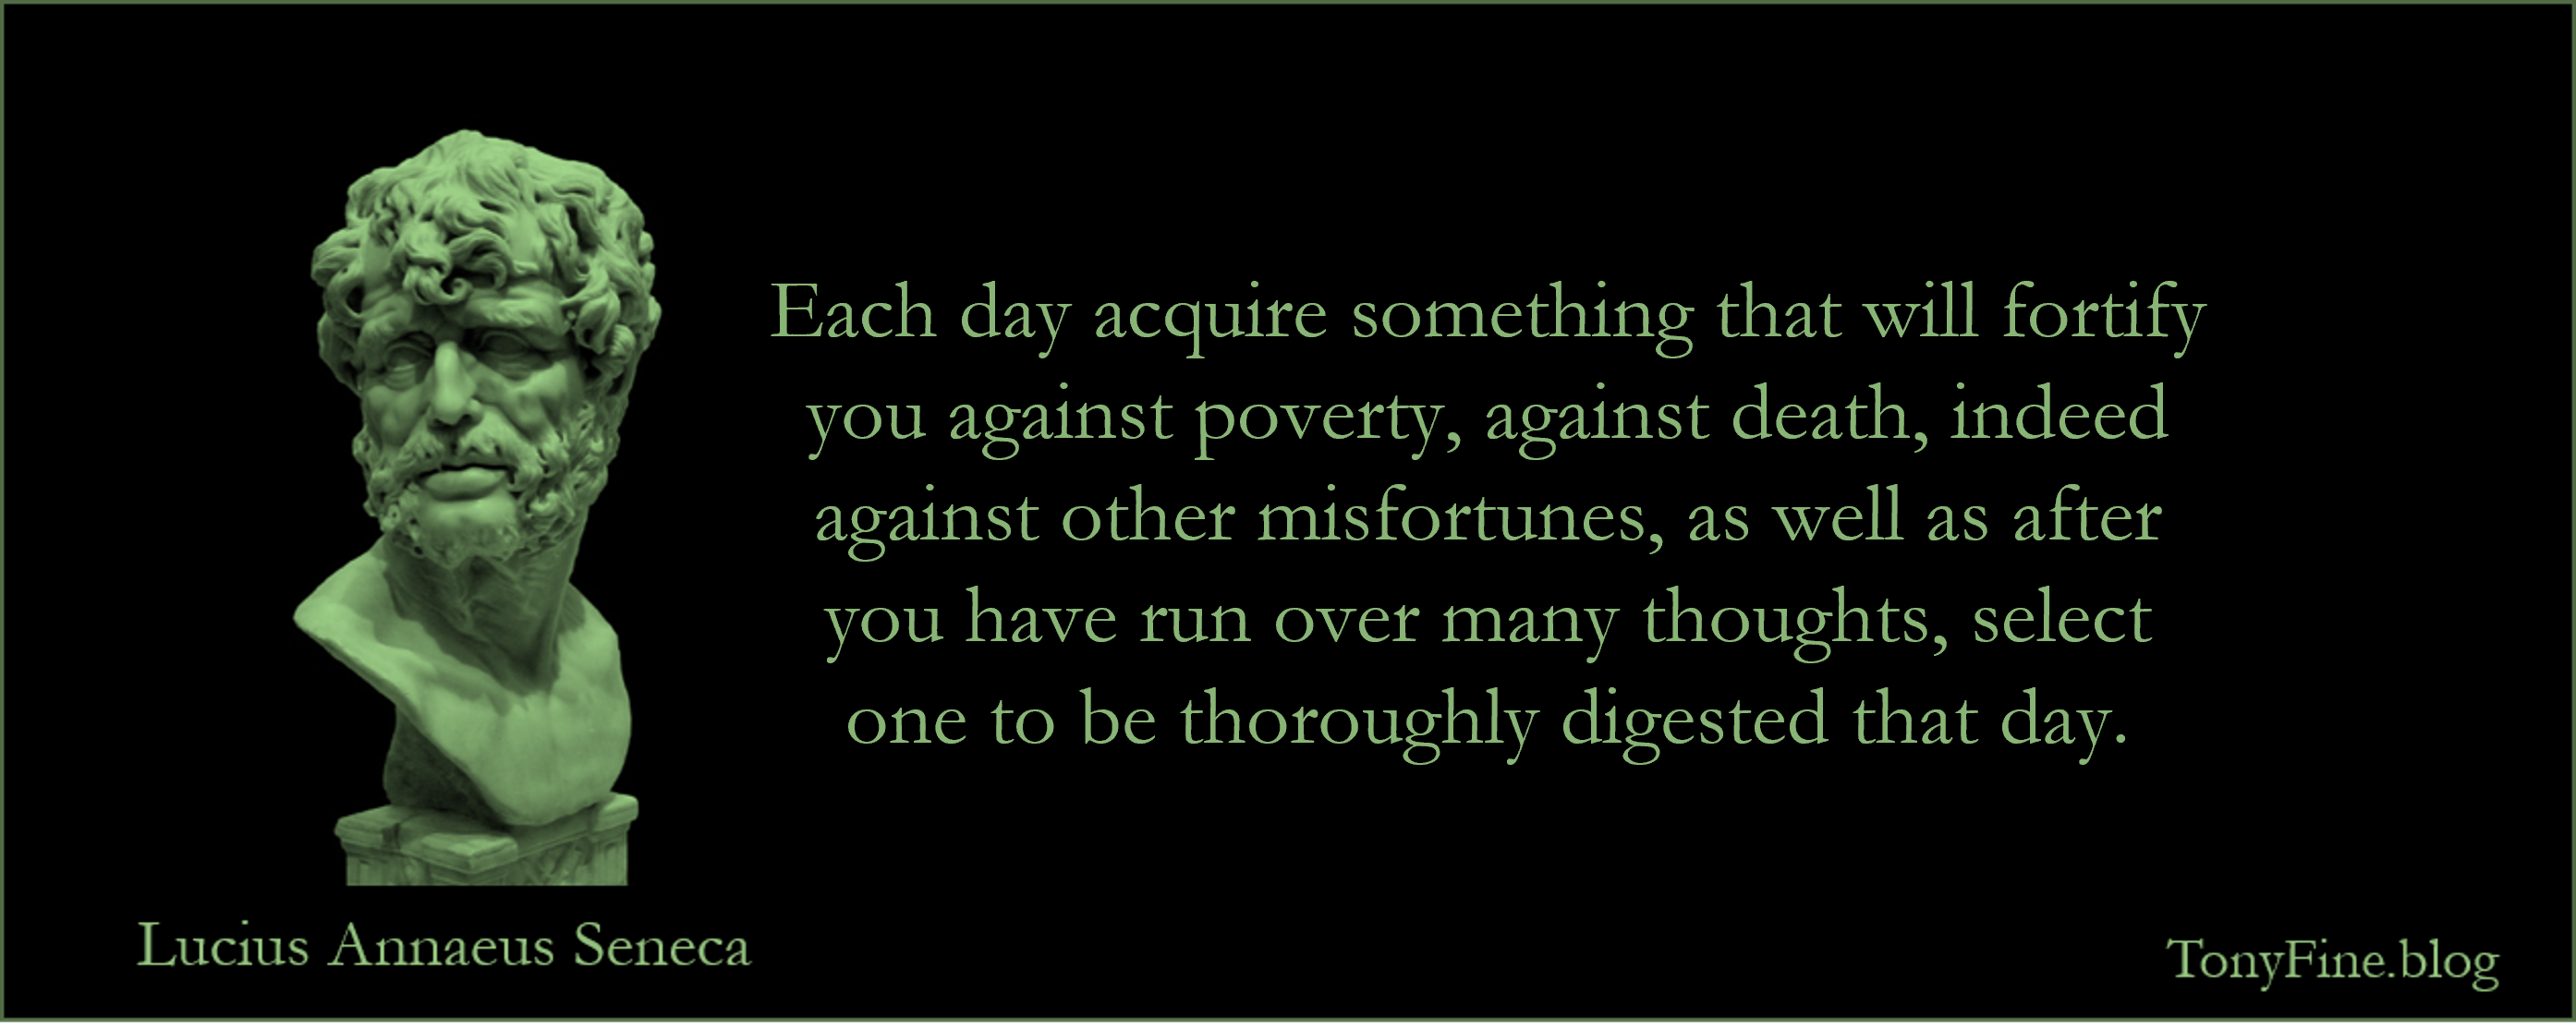 Each day acquire something that will fortify you against poverty, against death, indeed against other misfortunes, as well as after you have run over many thoughts, select one to be thoroughly digested that day. -Seneca